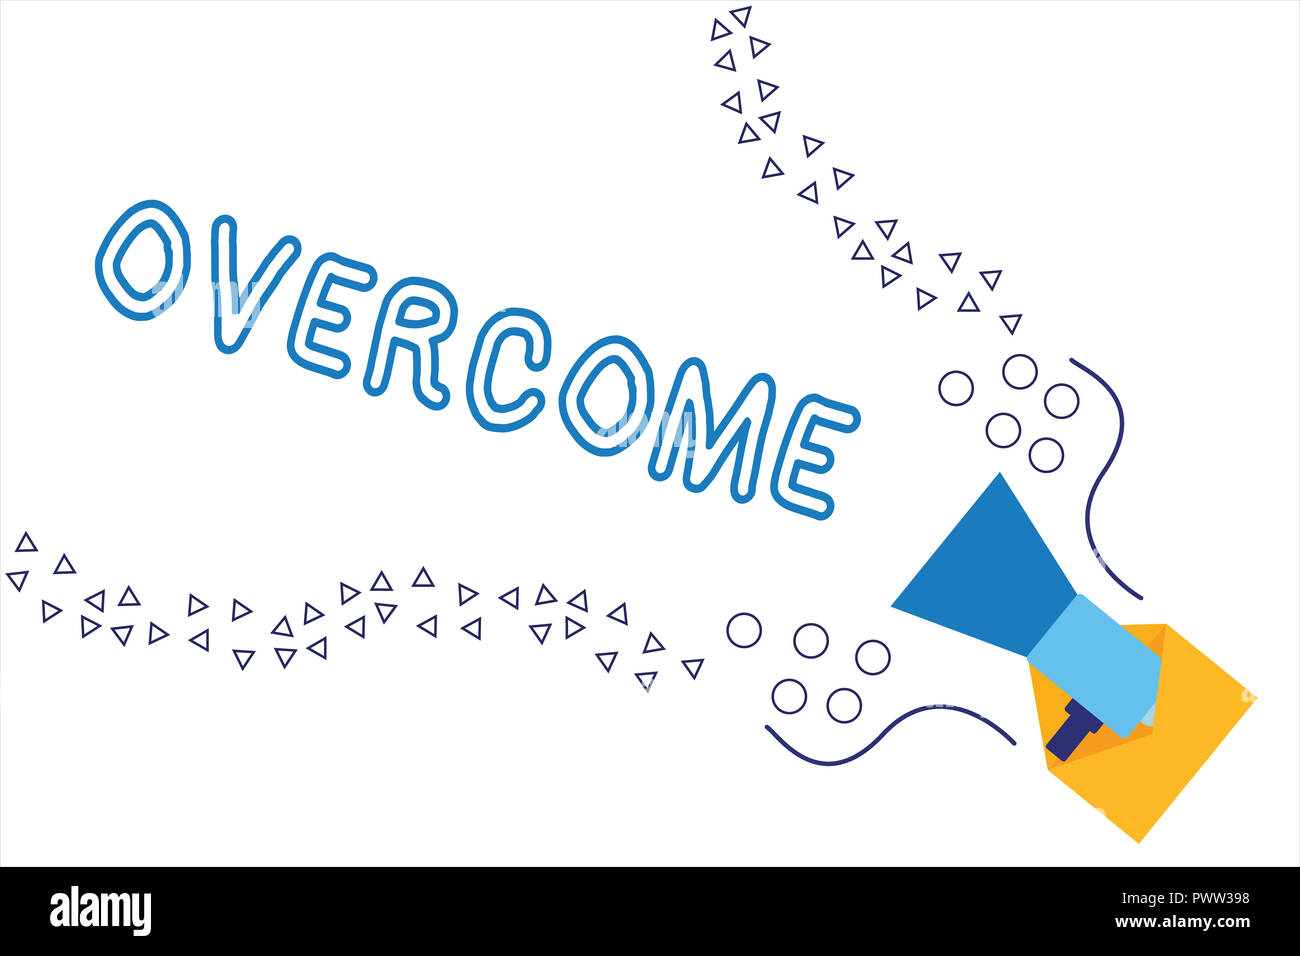 Word writing text Overcome. Business concept for succeed in dealing with problem or difficulty defeat opponent. - Stock Image